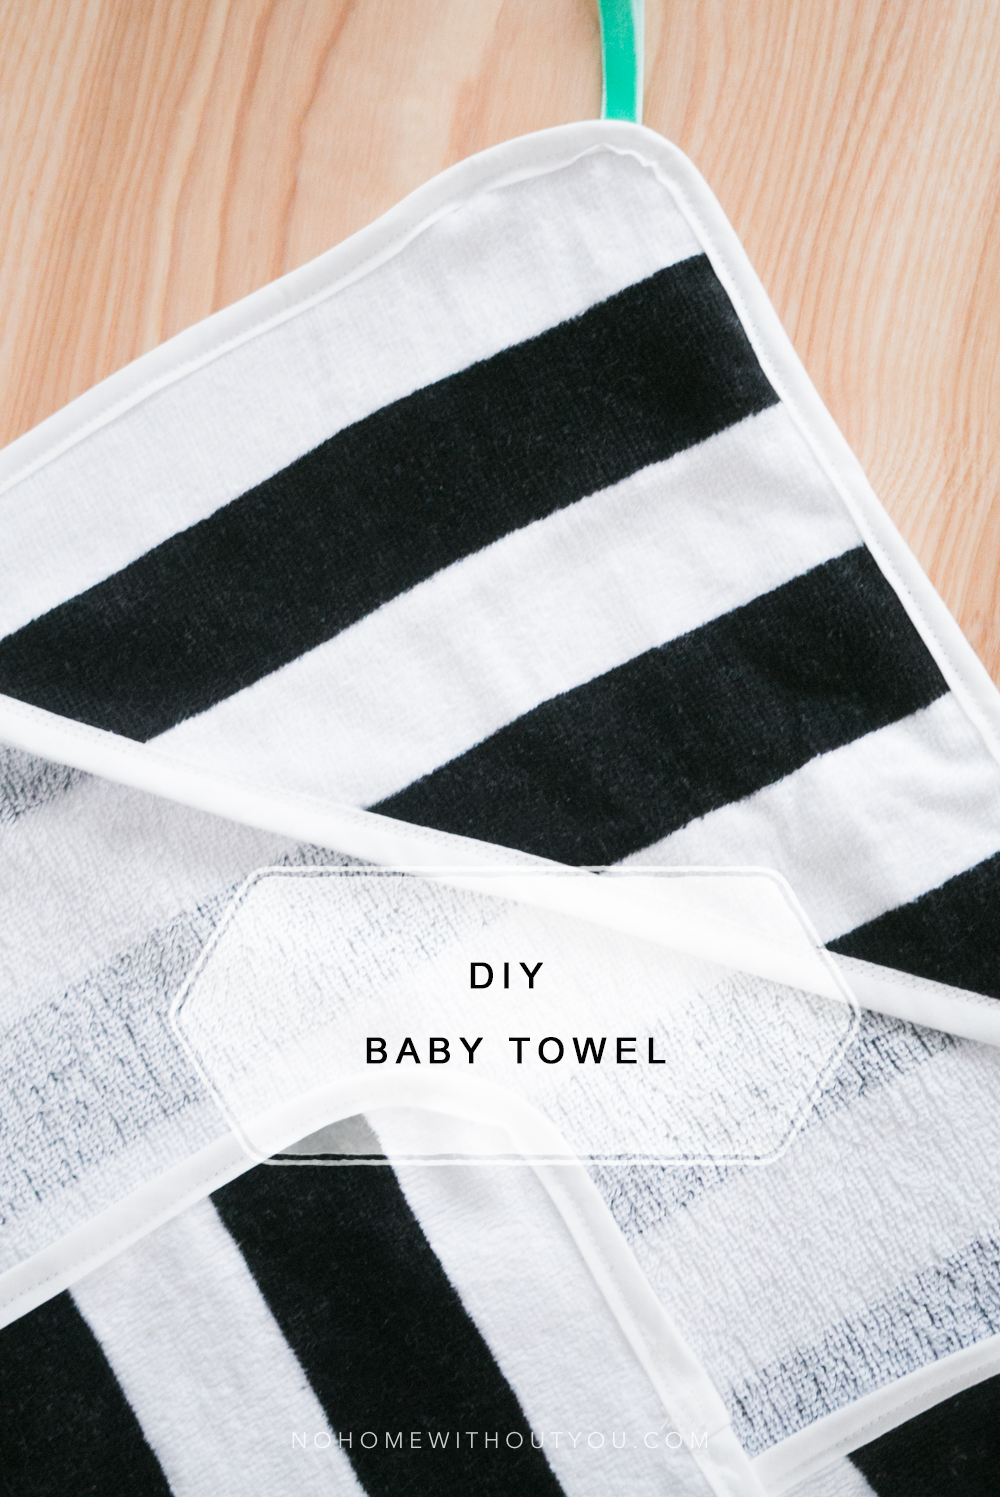 DIY baby towel No Home Without You (2 of 3)